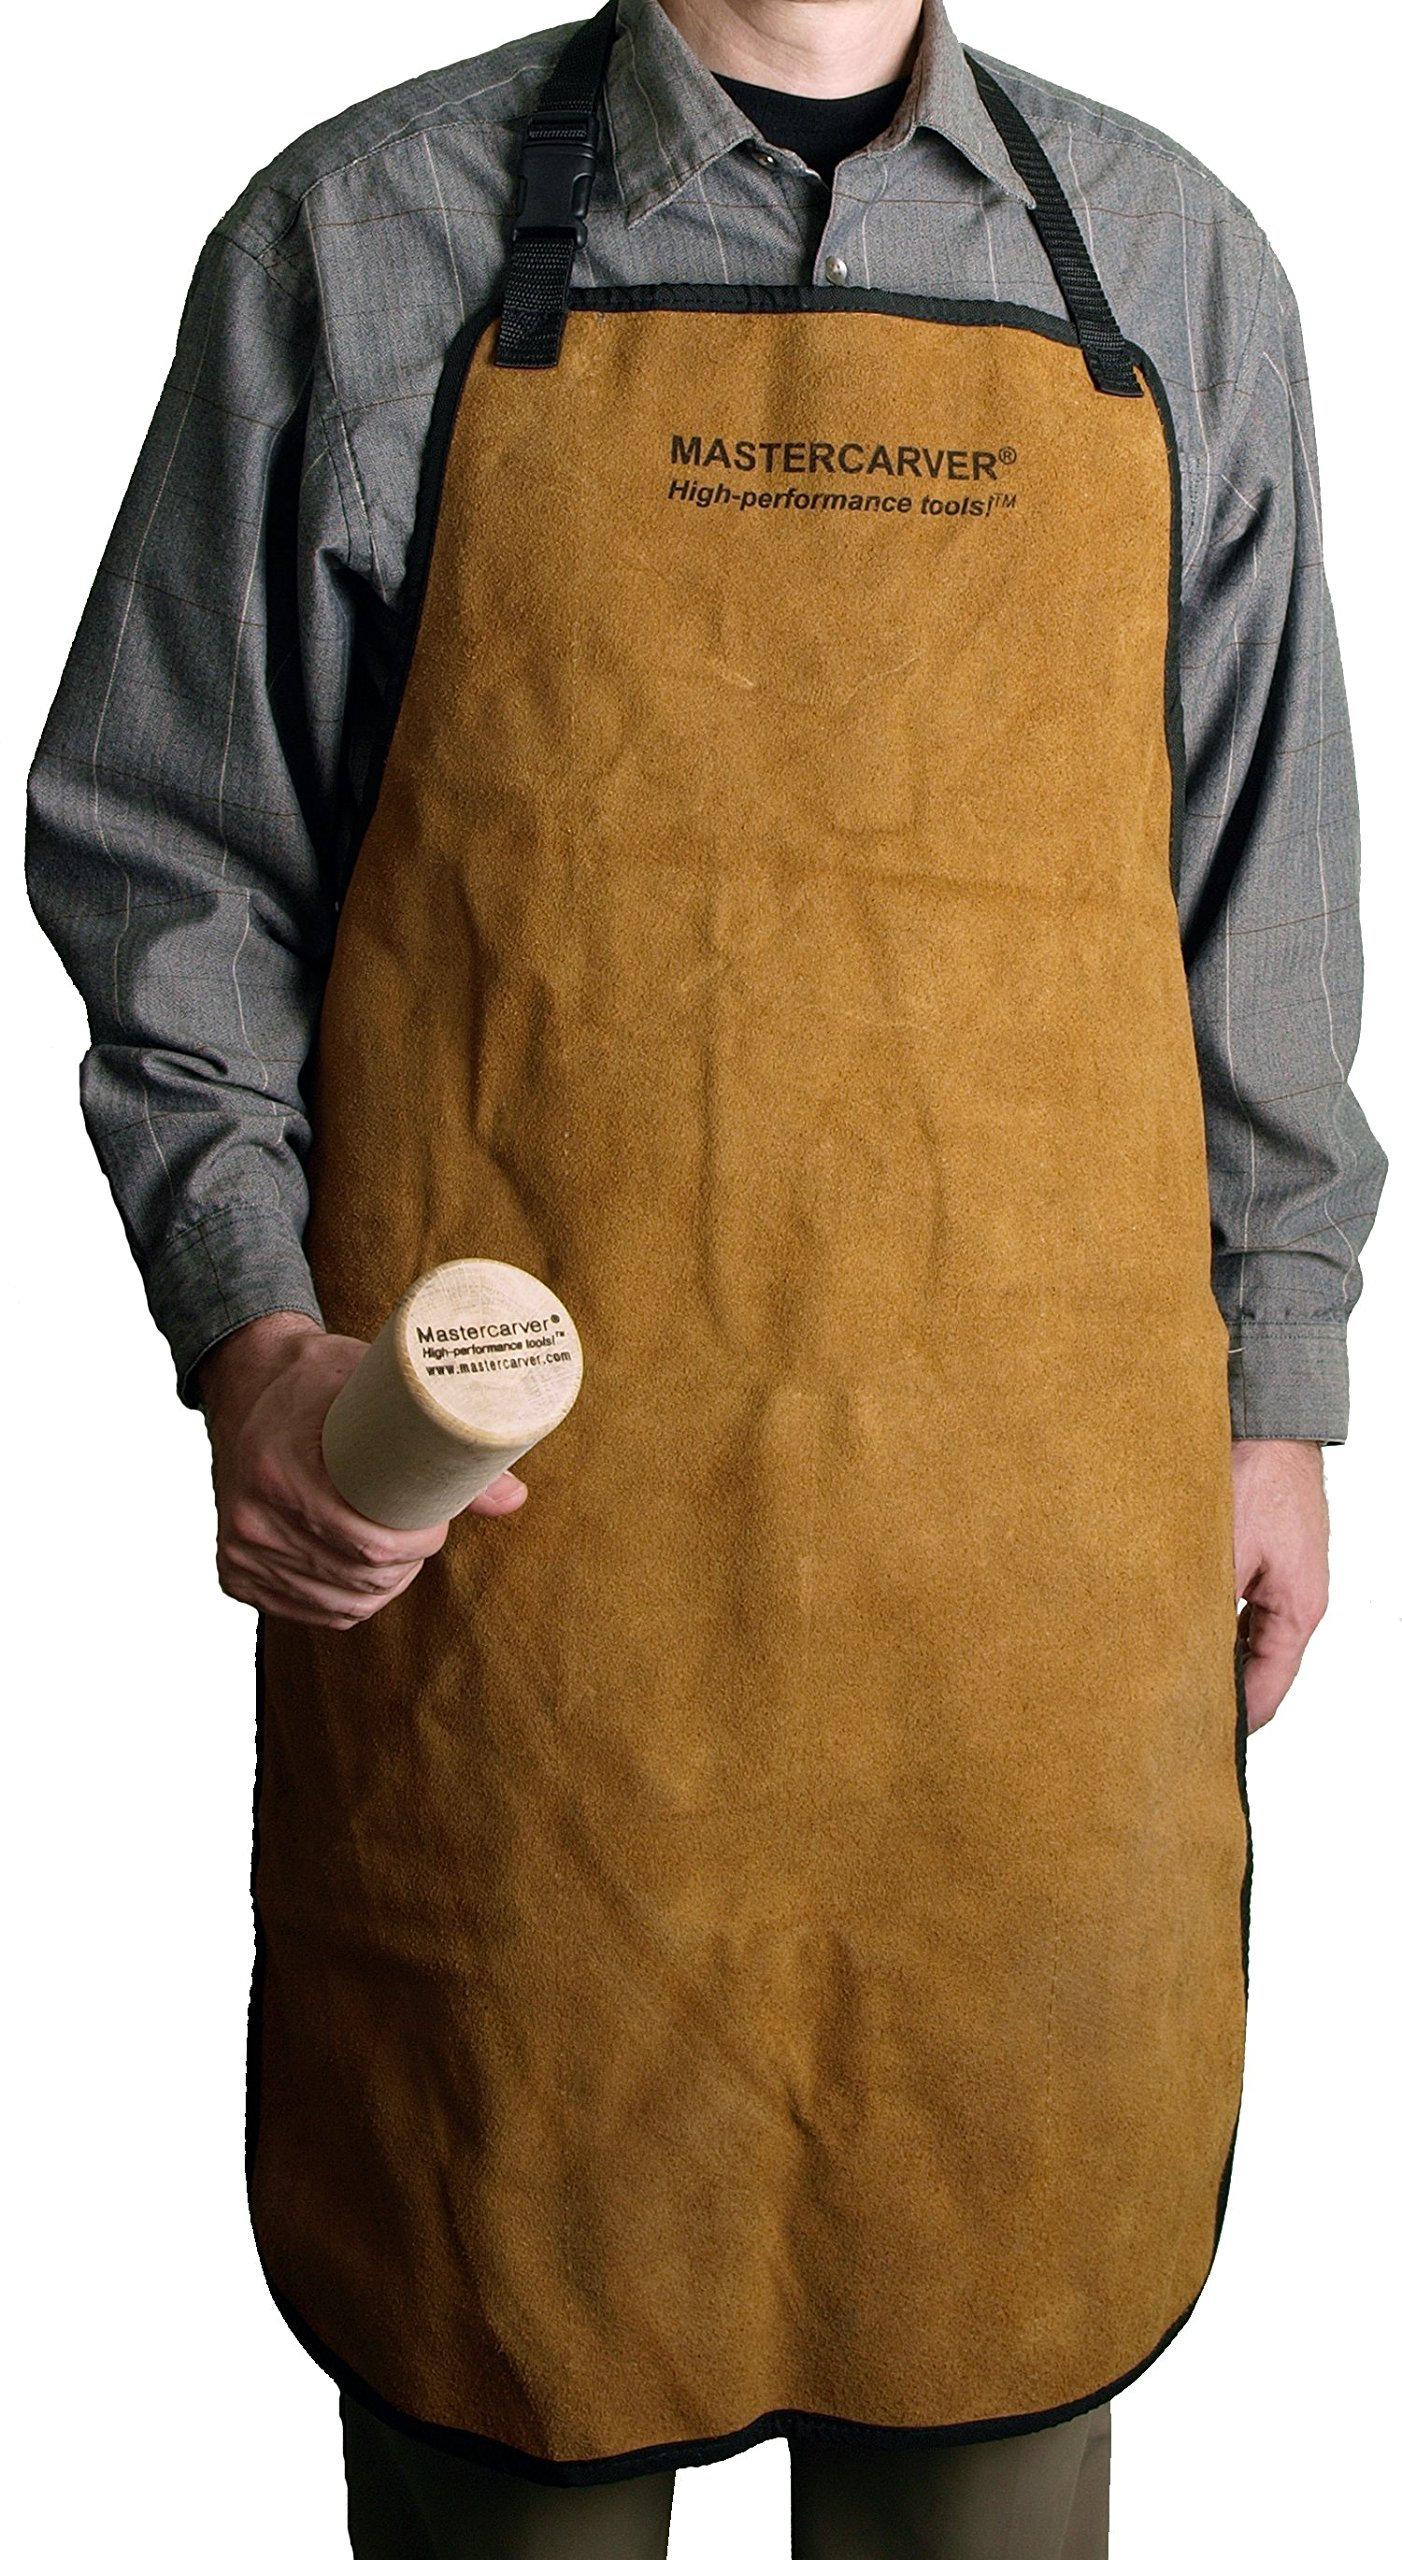 Mastercarver Woodcarvers Woodworkers Woodturners Chip Carvers Power Carvers Leather Apron